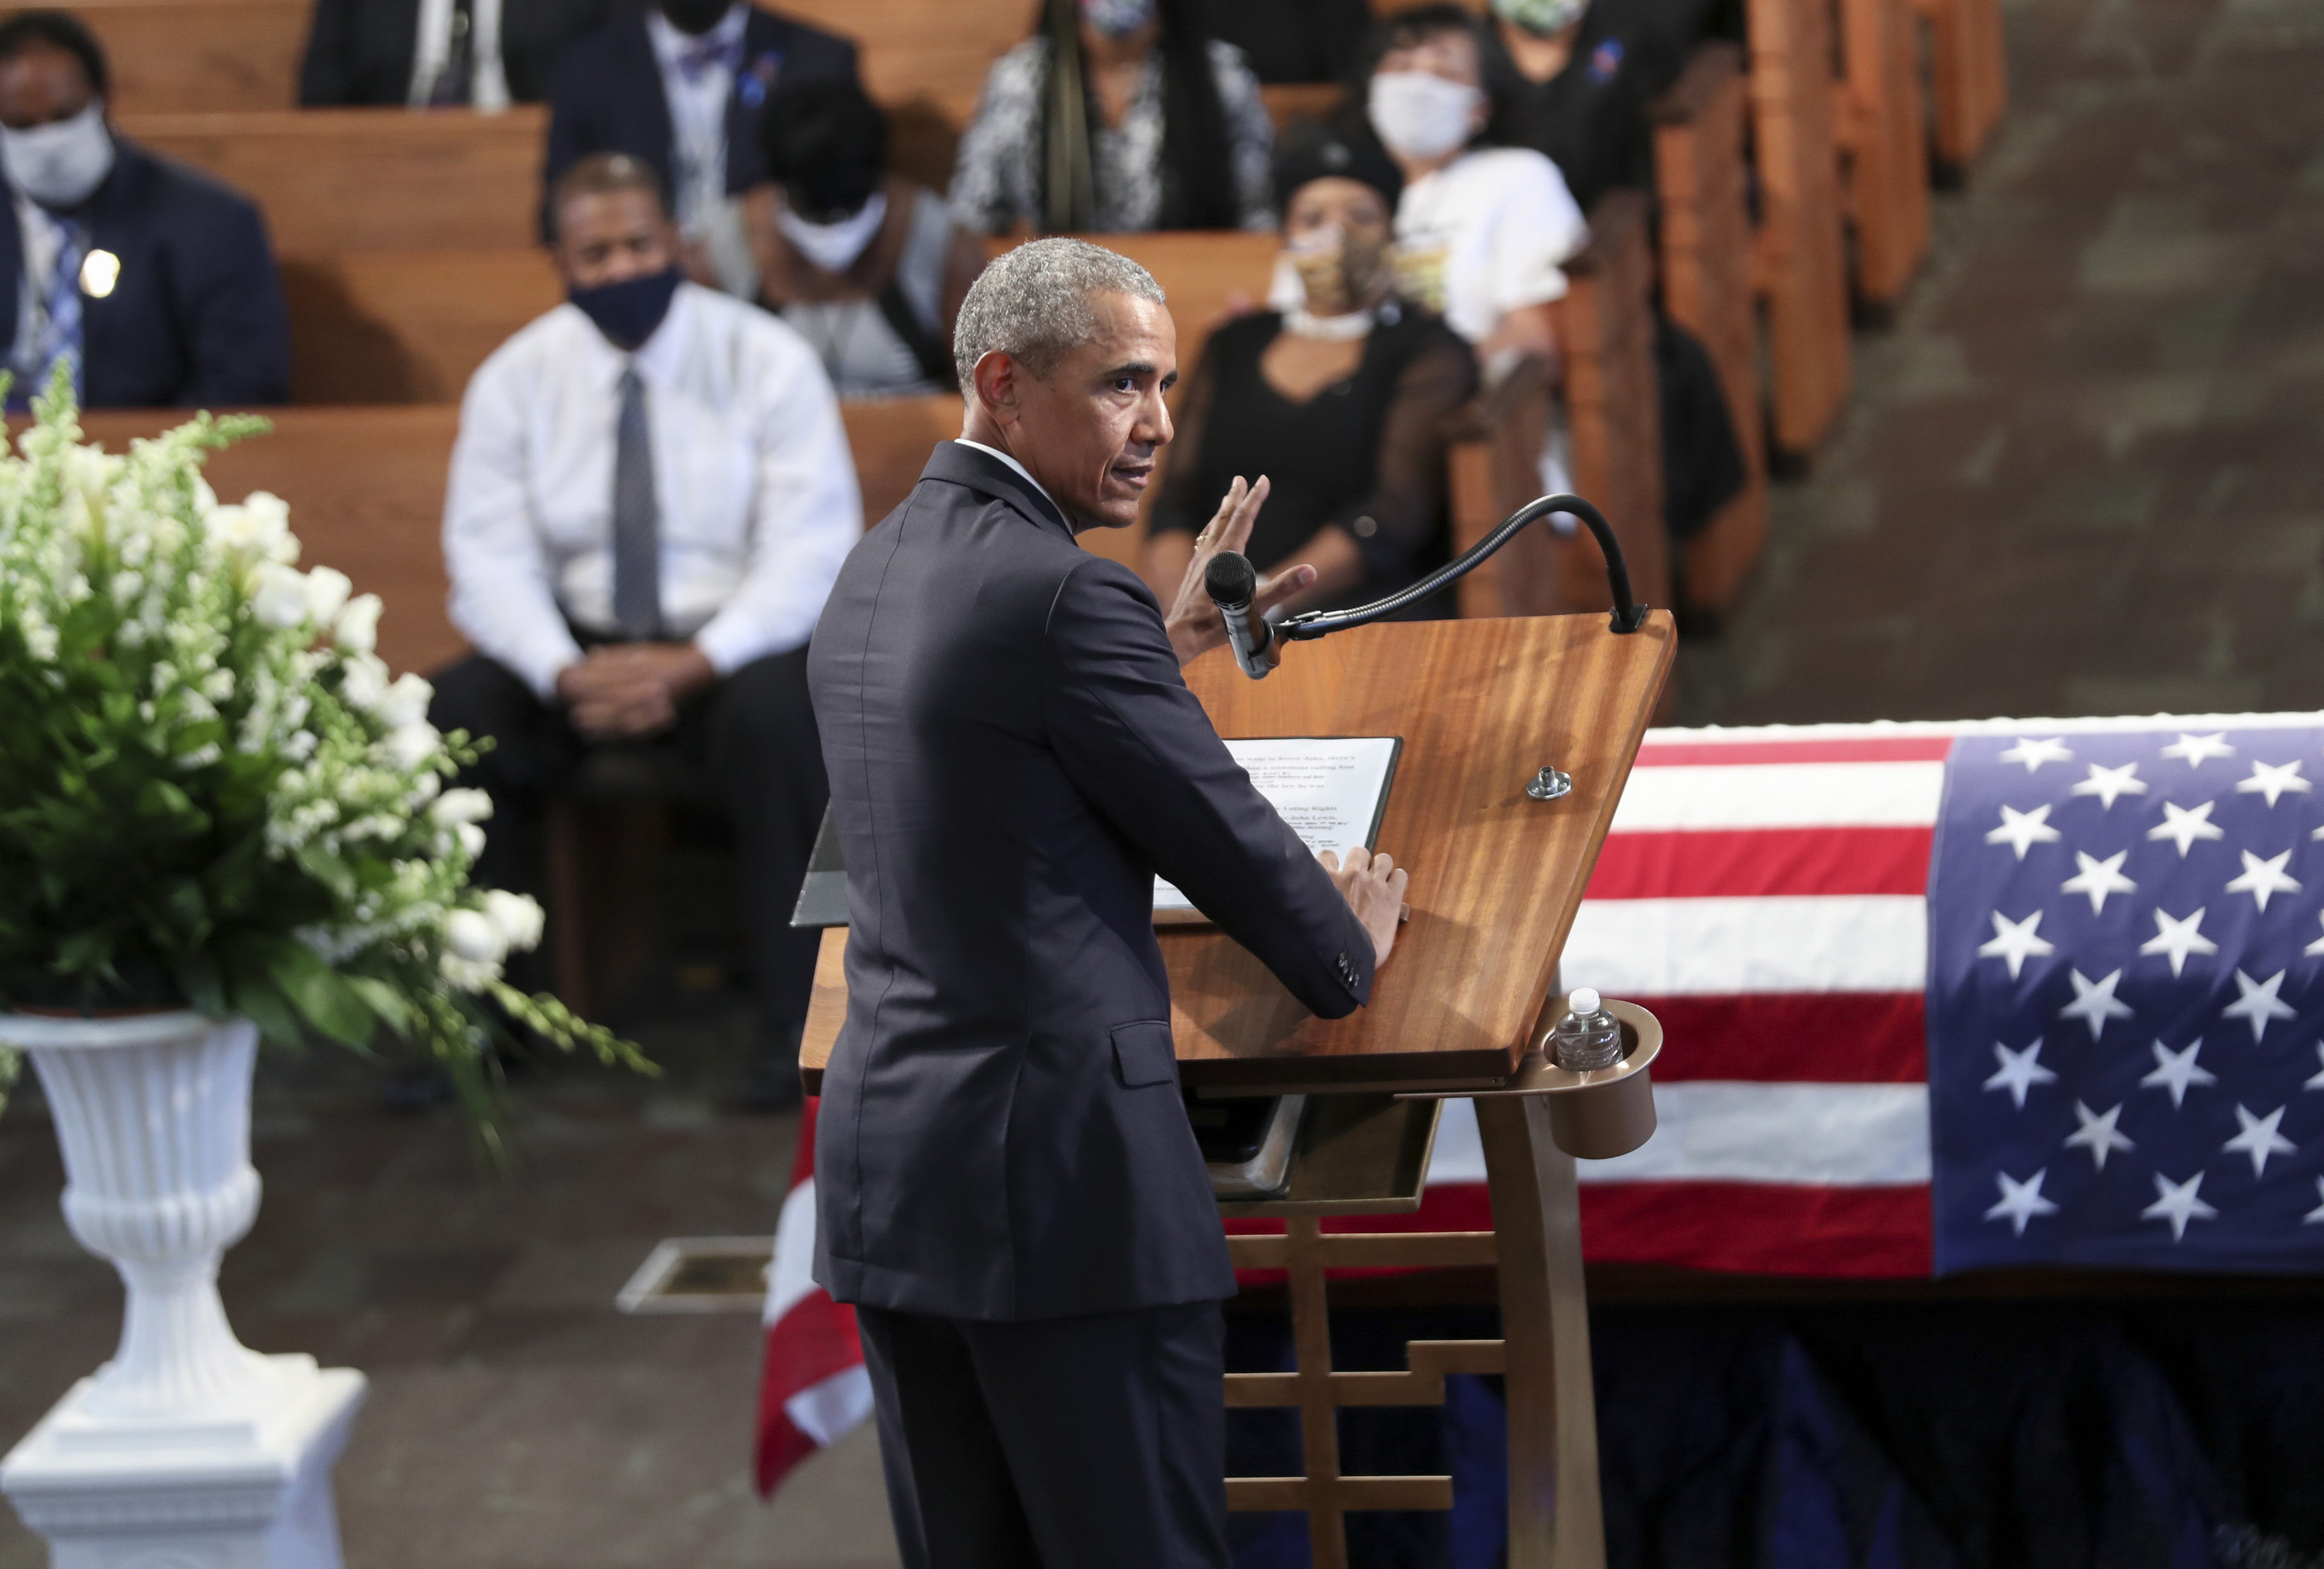 Obama at the lectern in front of the flag-draped coffin of John Lewis